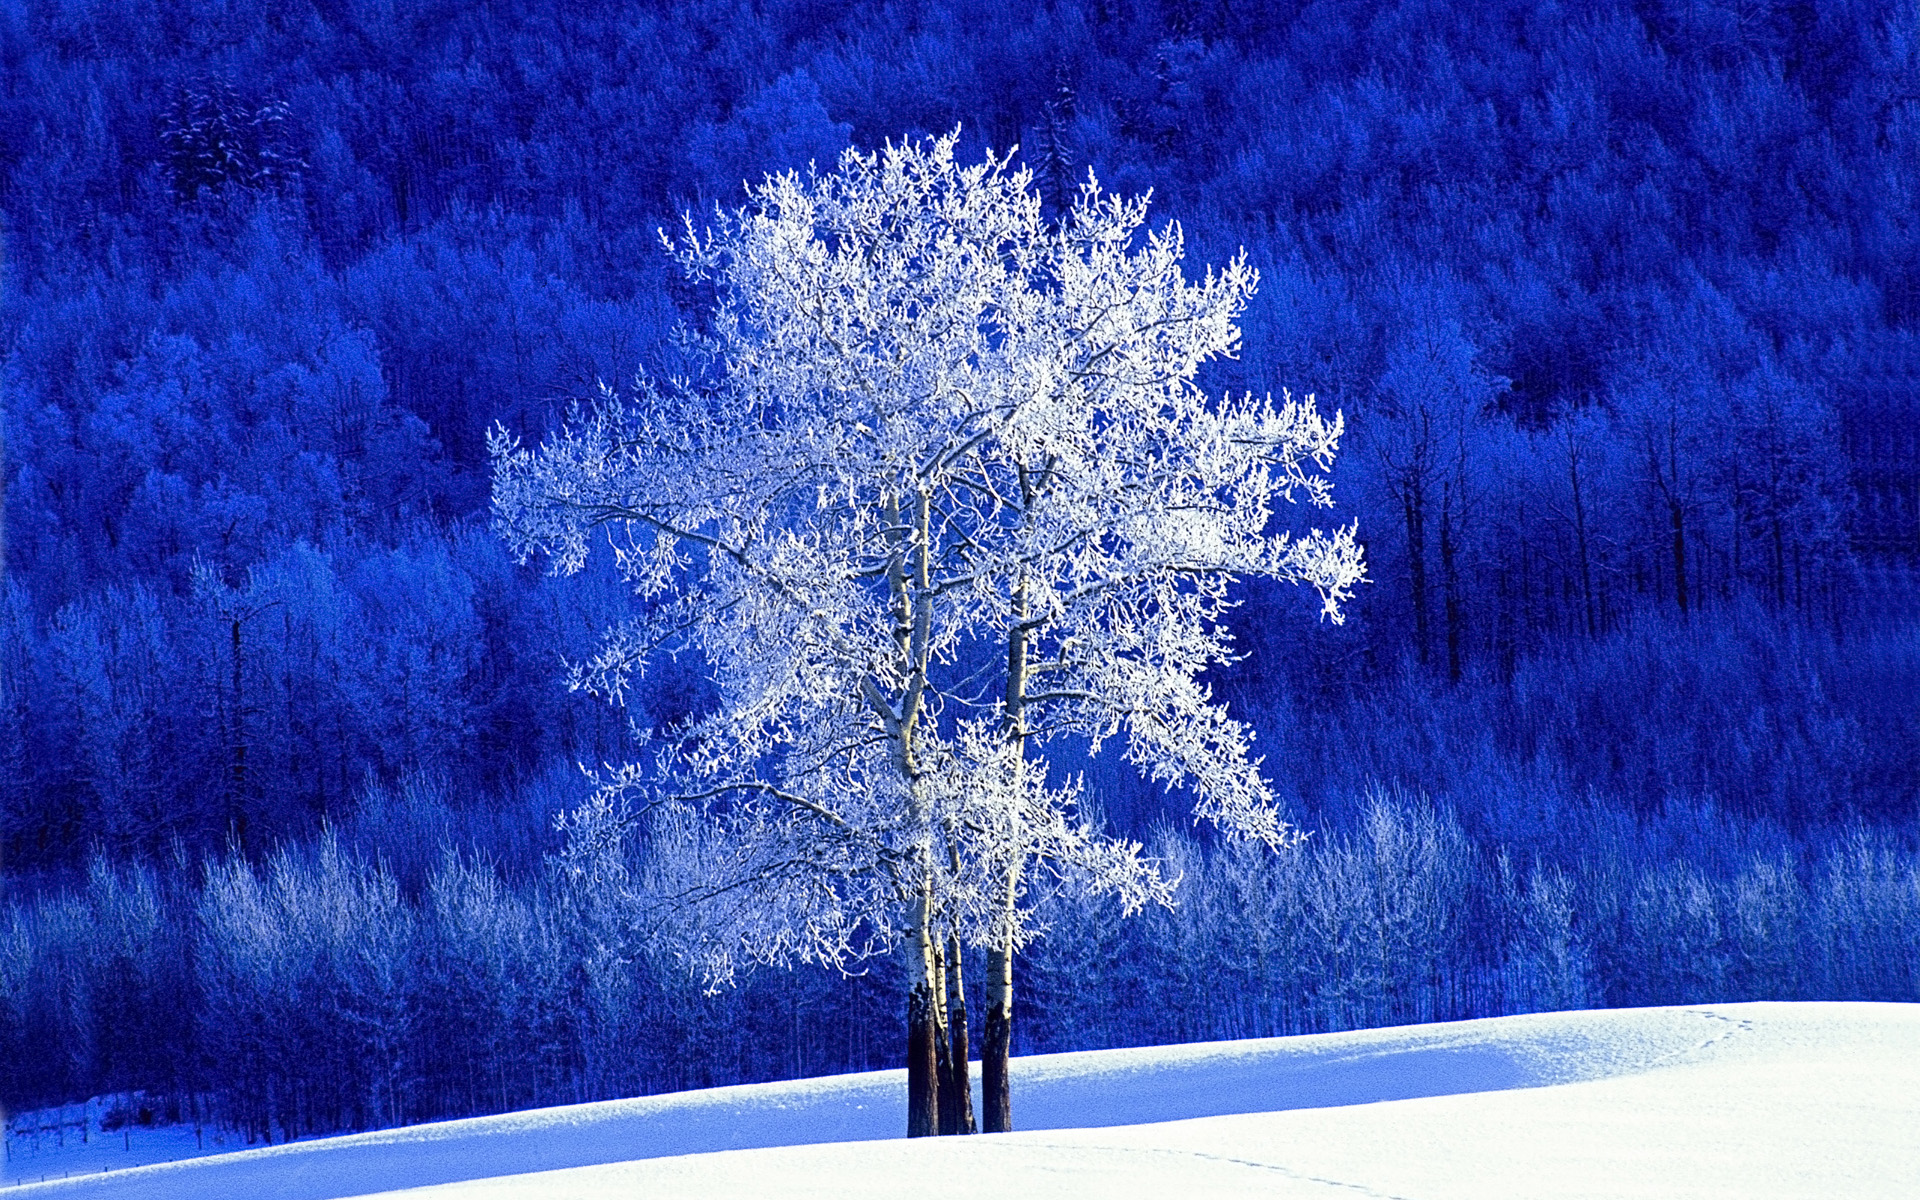 Frosted Aspen Tree 3563.76 Kb